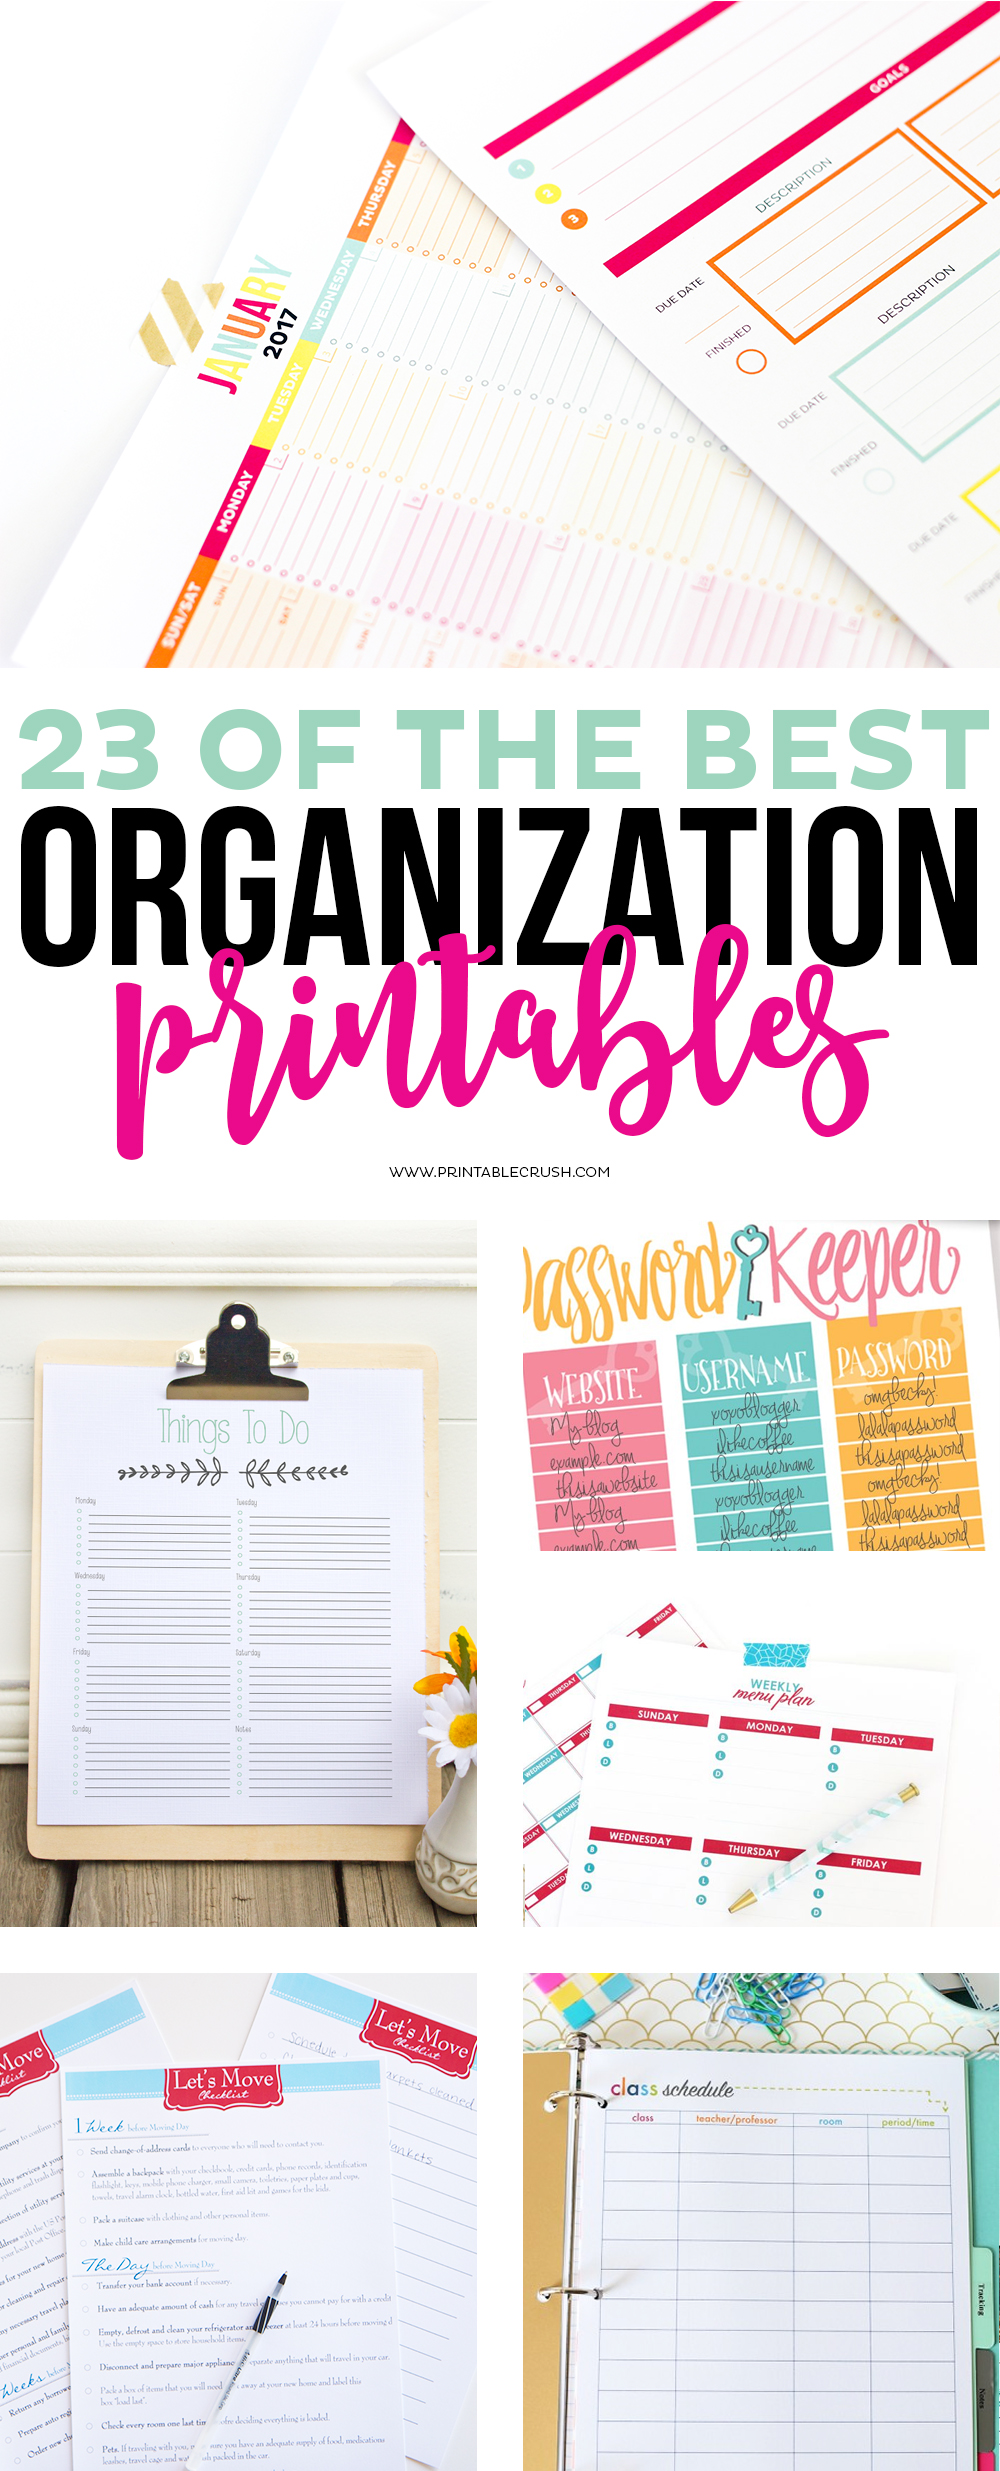 Best Calendar Organization : Of the best organization printables printable crush